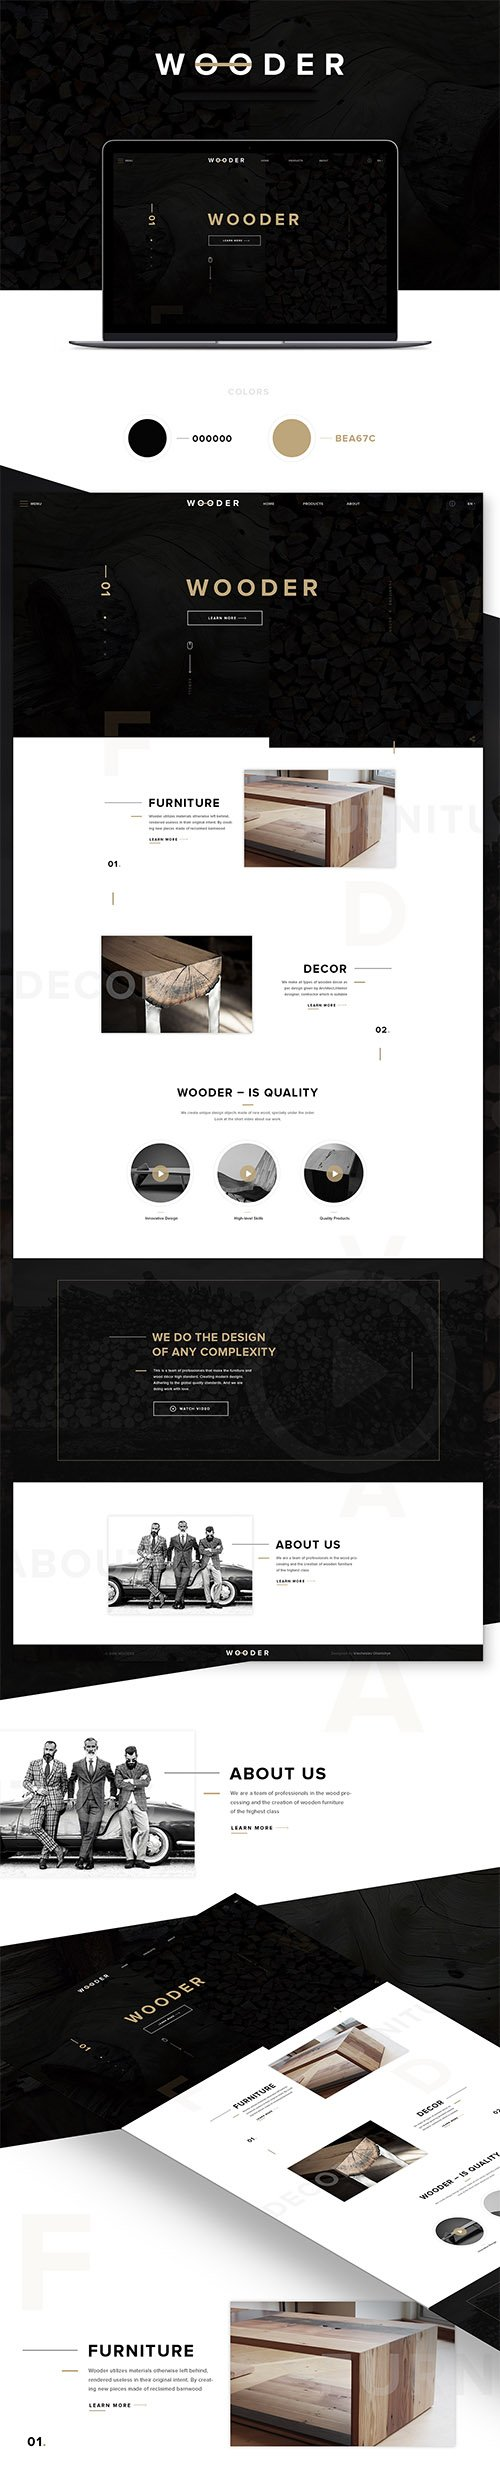 PSD Web Template - WOODER - One Page